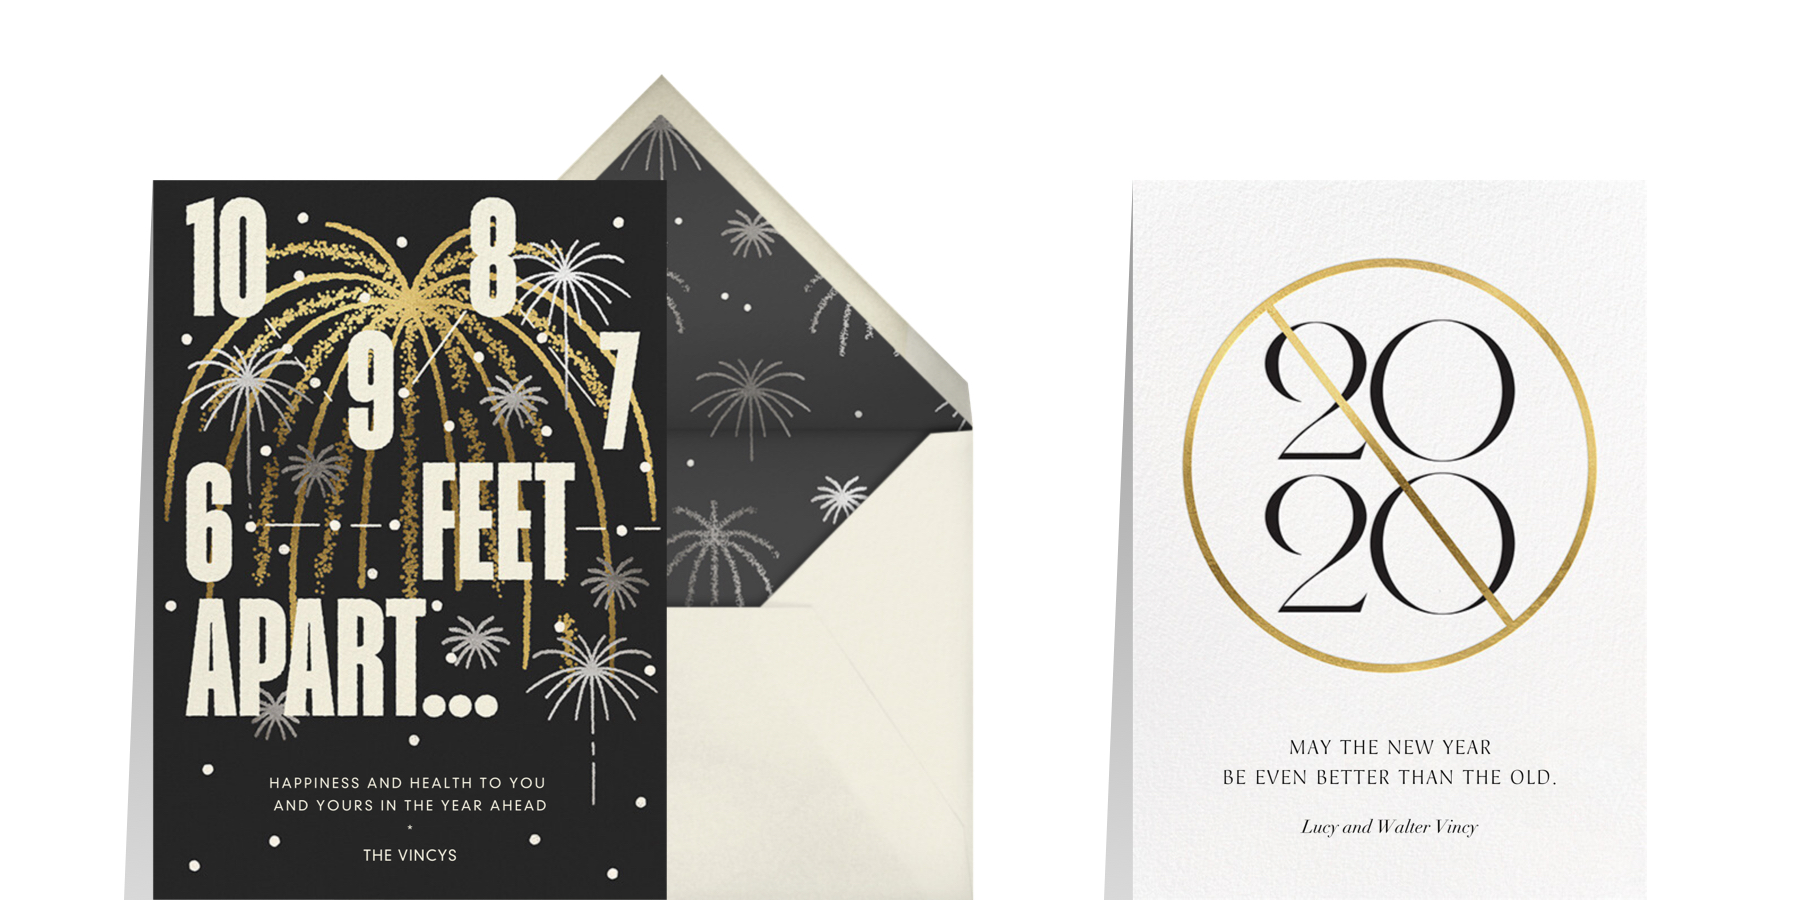 COVID greetings for New Years holiday cards in 2021